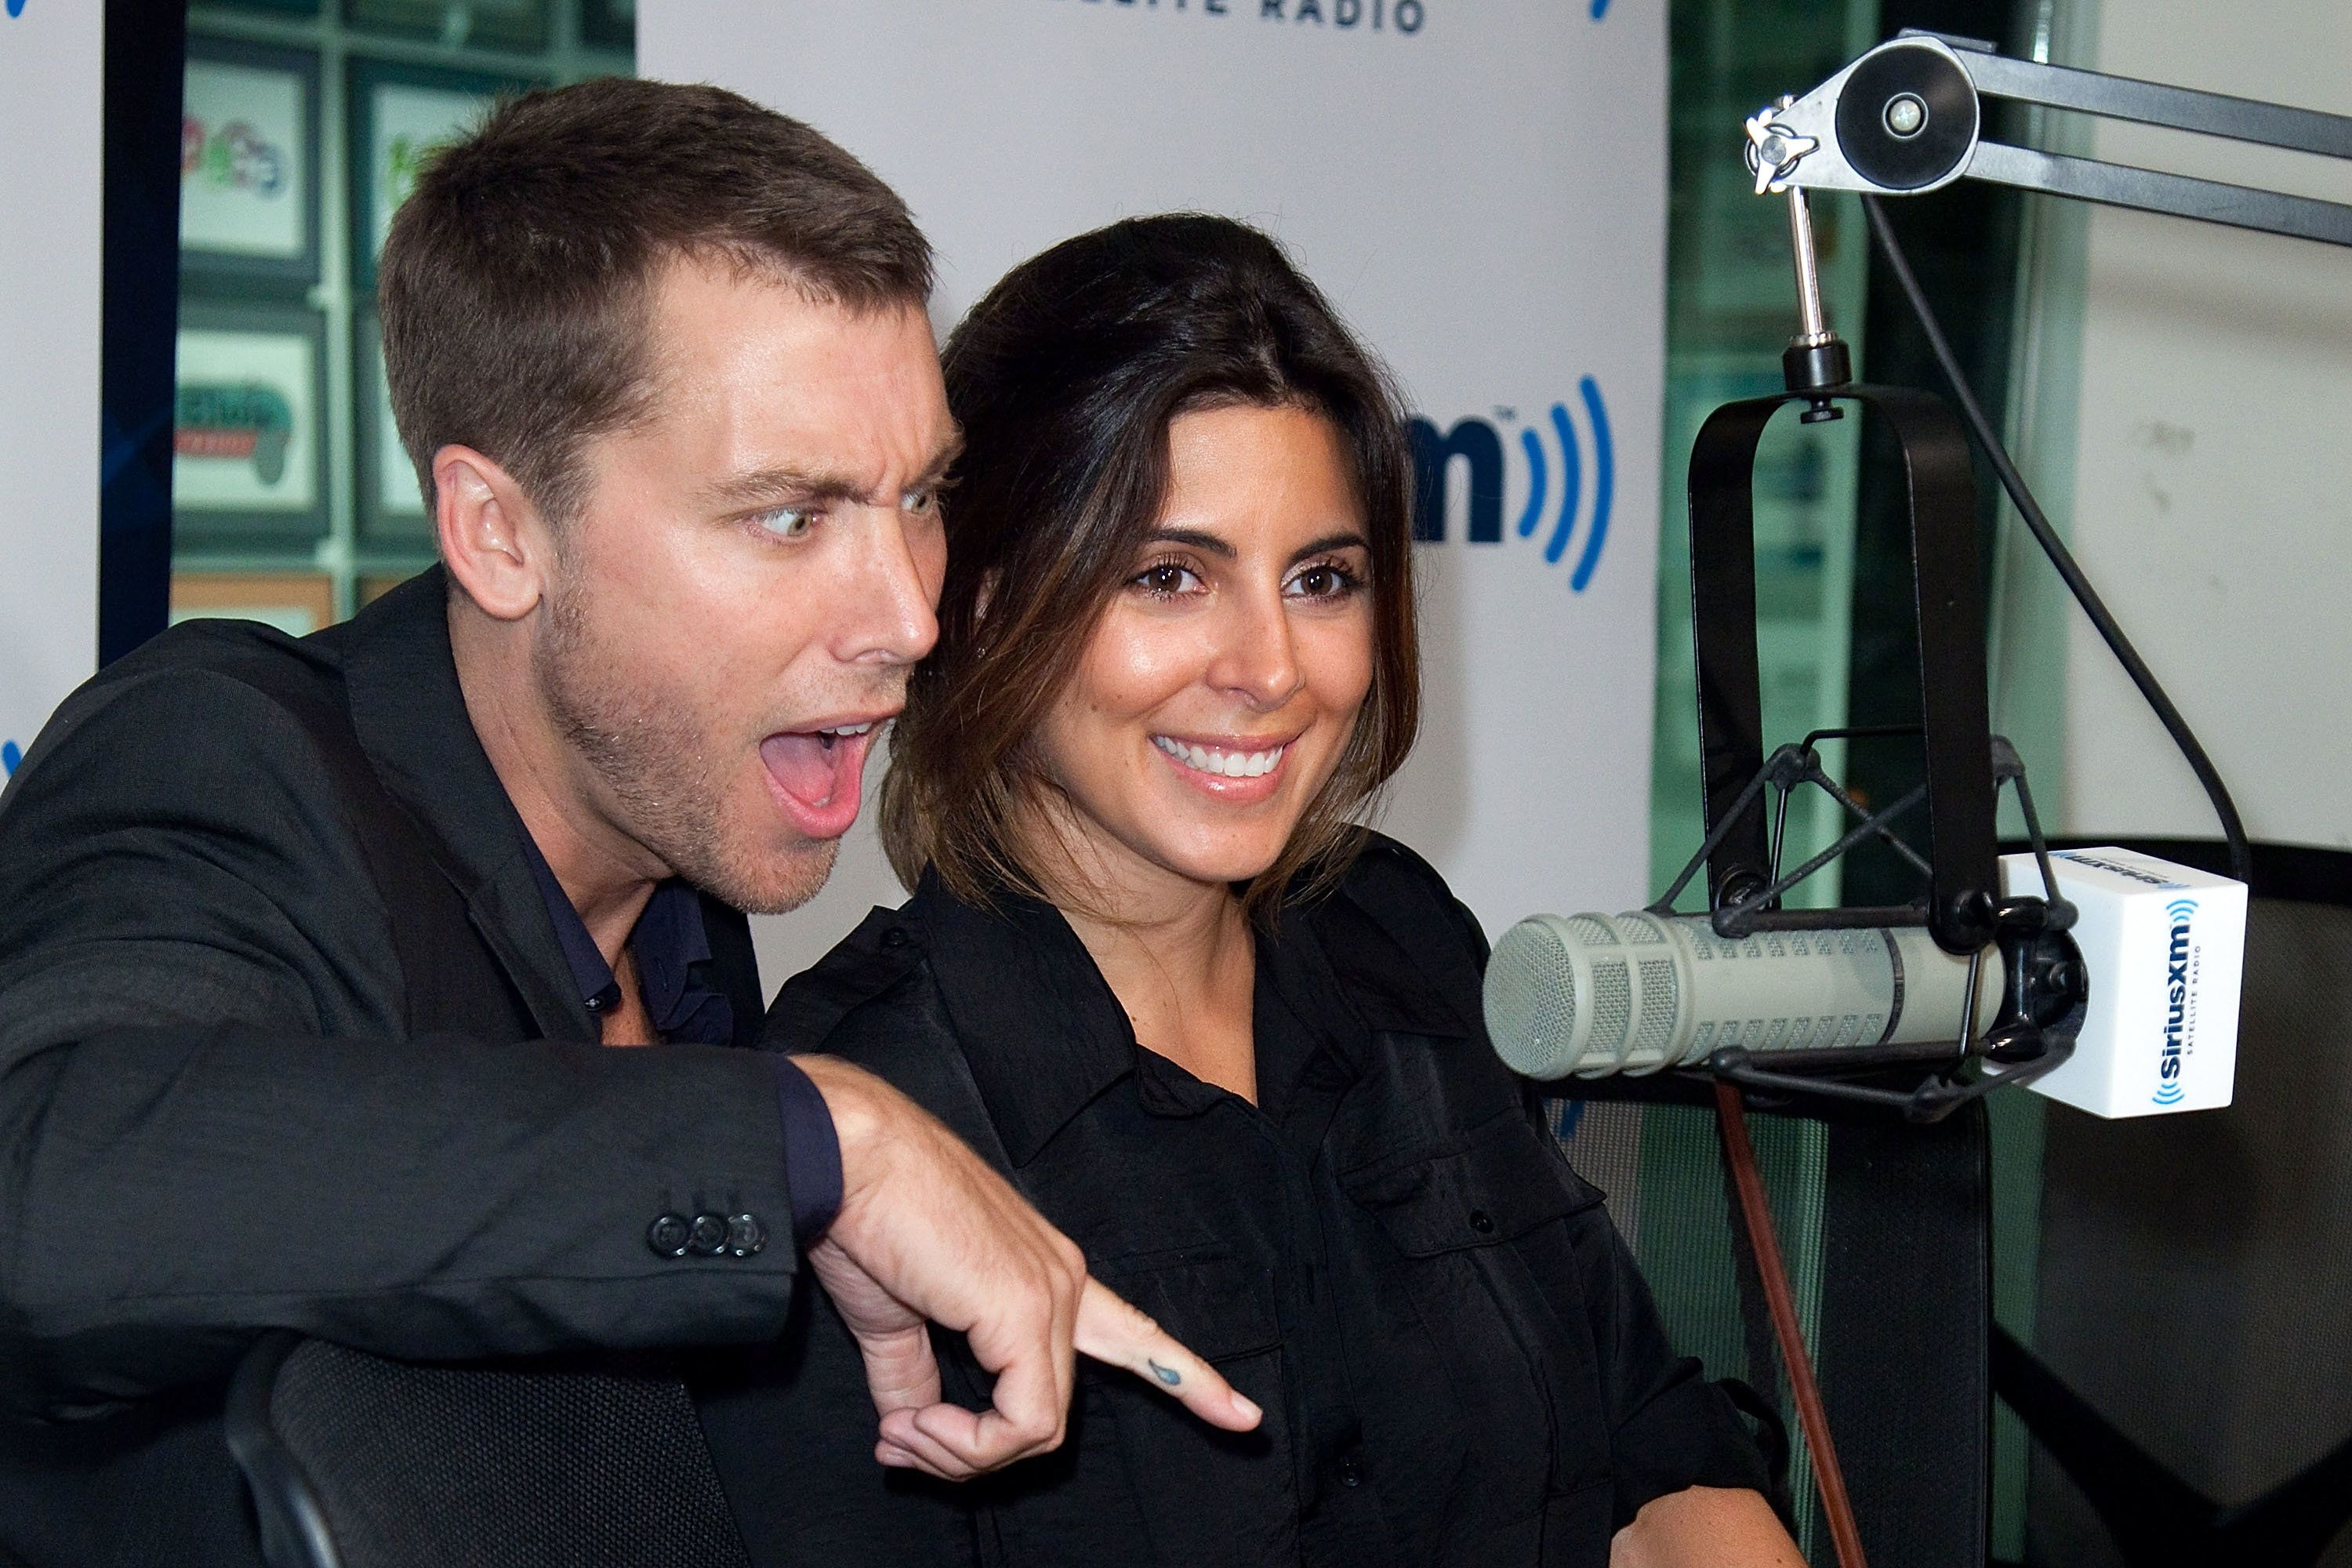 NEW YORK, NY - JULY 14:  (EXCLUSIVE COVERAGE) Singer/actor Lance Bass and actress Jamie-Lynn Sigler visit 'The Pop Ten' at SiriusXM Studio on July 14, 2011 in New York City.  (Photo by Ben Hider/Getty Images)